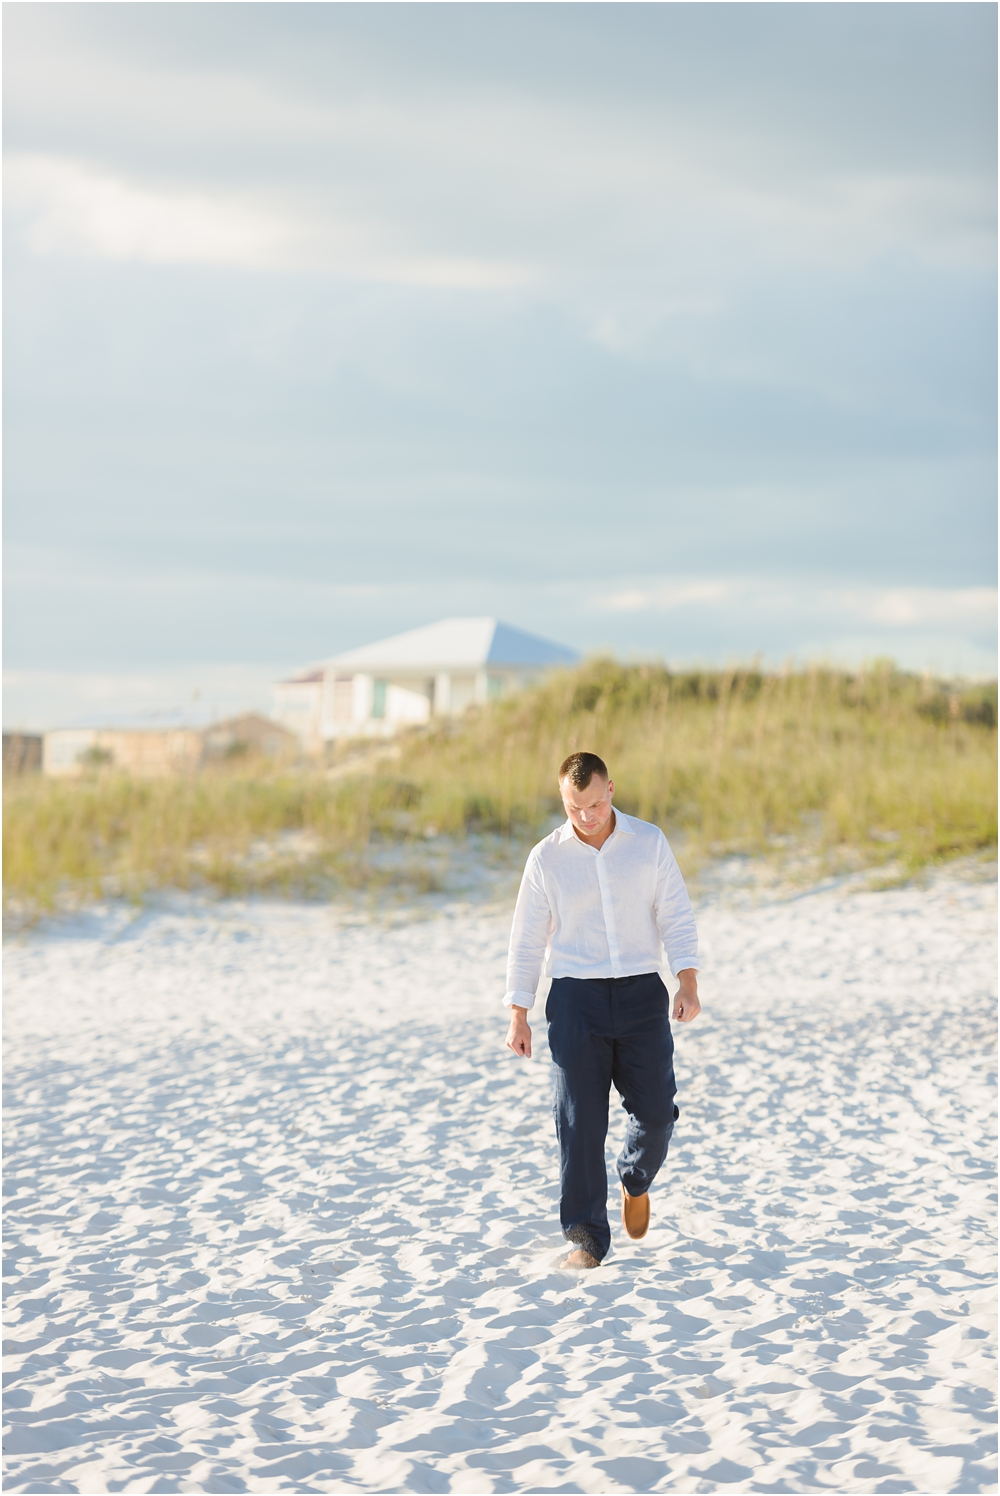 mcglothlin-wedding-kiersten-stevenson-photography-30a-panama-city-beach-dothan-tallahassee-(76-of-145).jpg